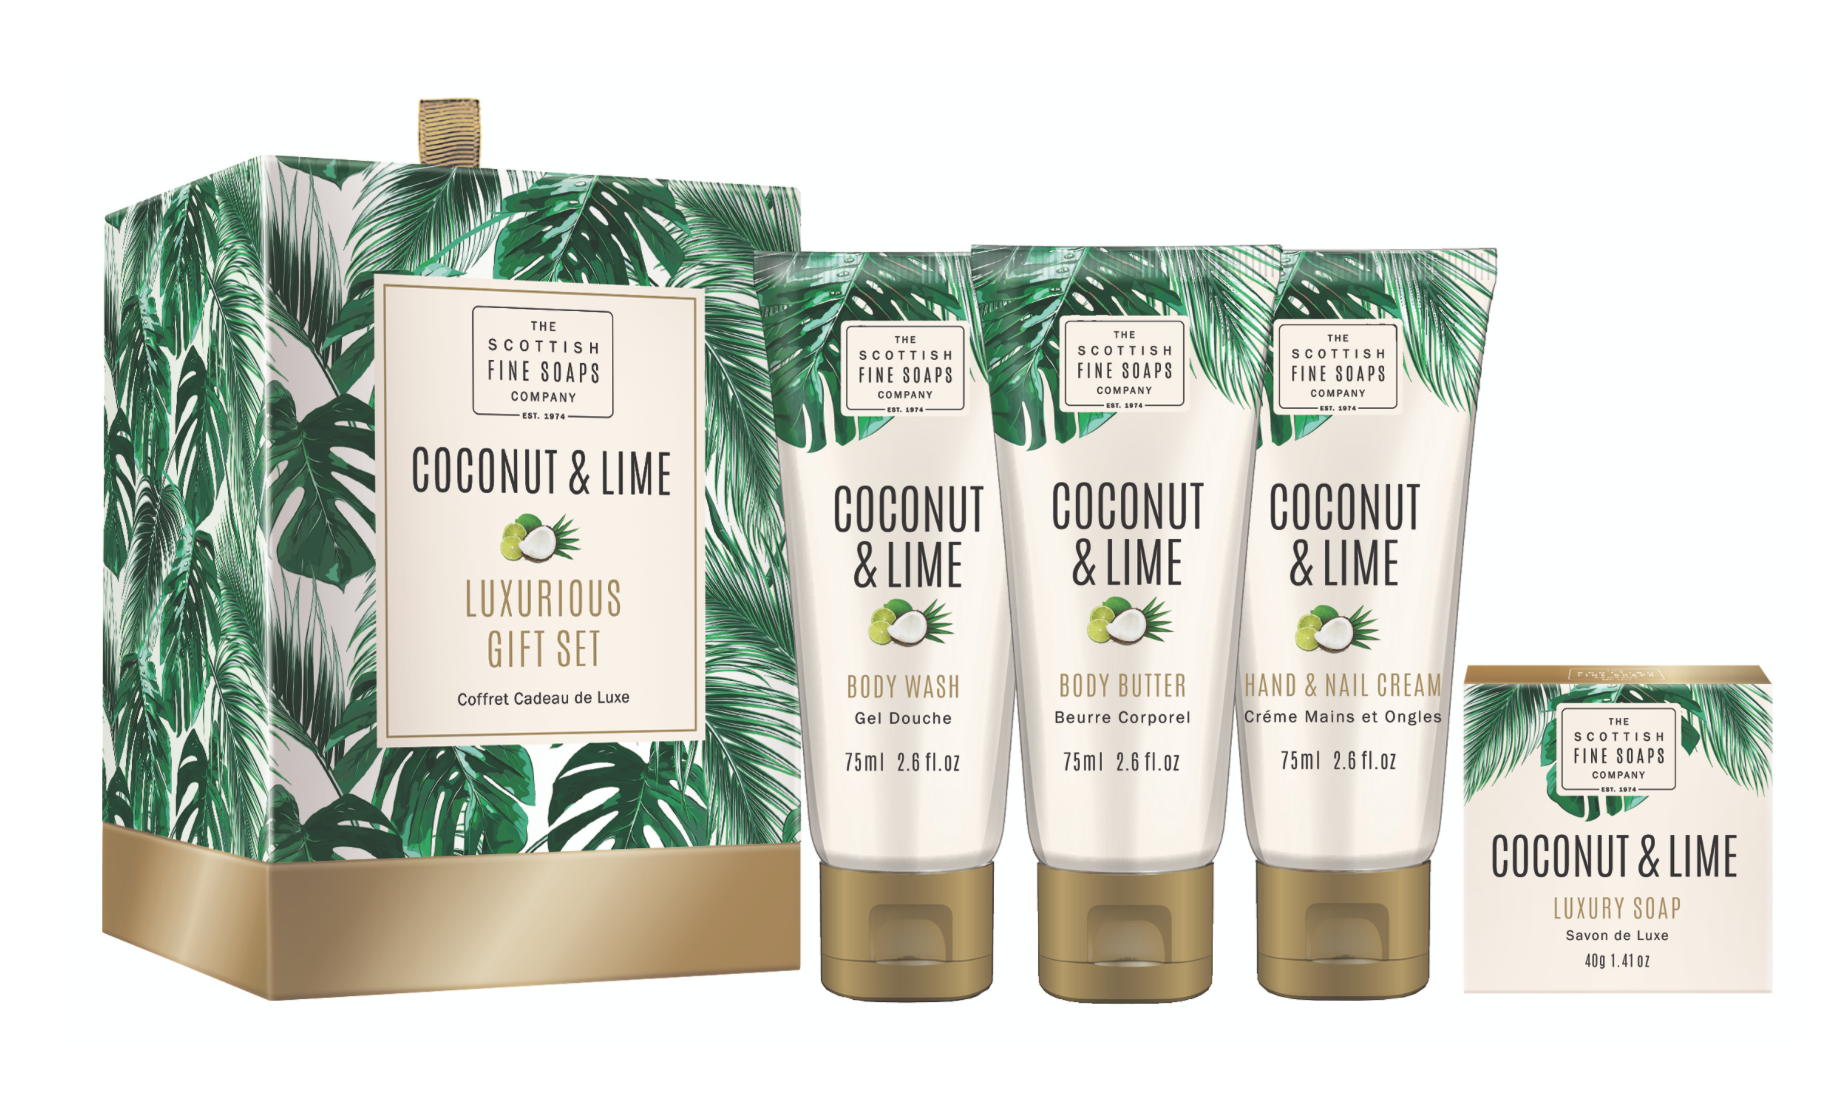 Coconut & lime gift set-£13